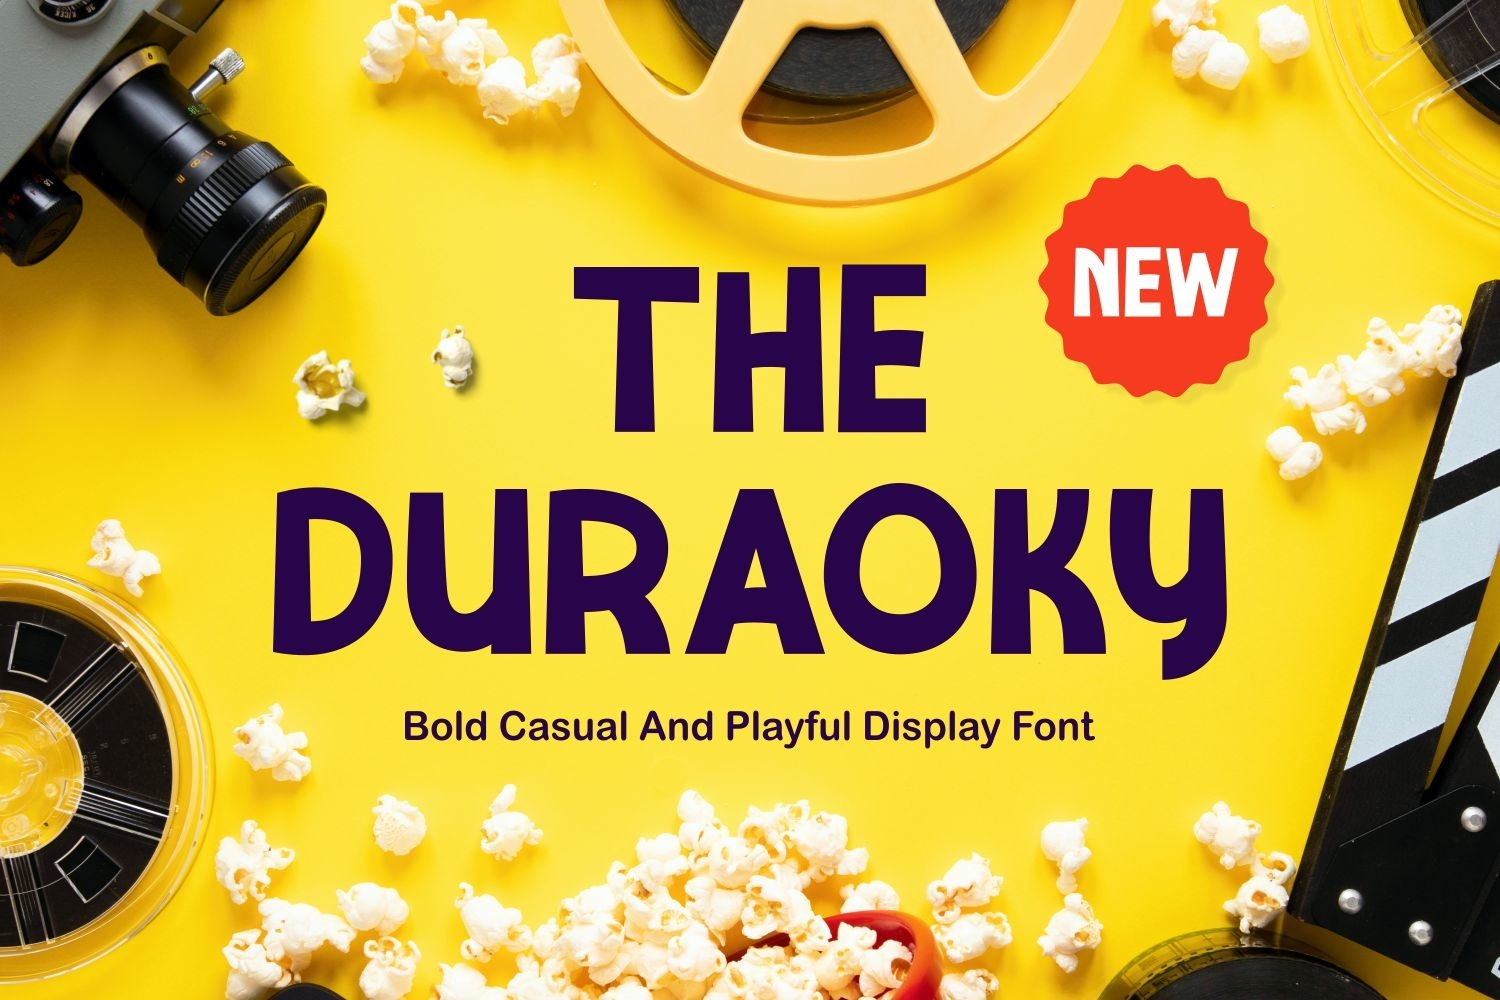 Duraoky - Casual & Playful Display Font example image 1